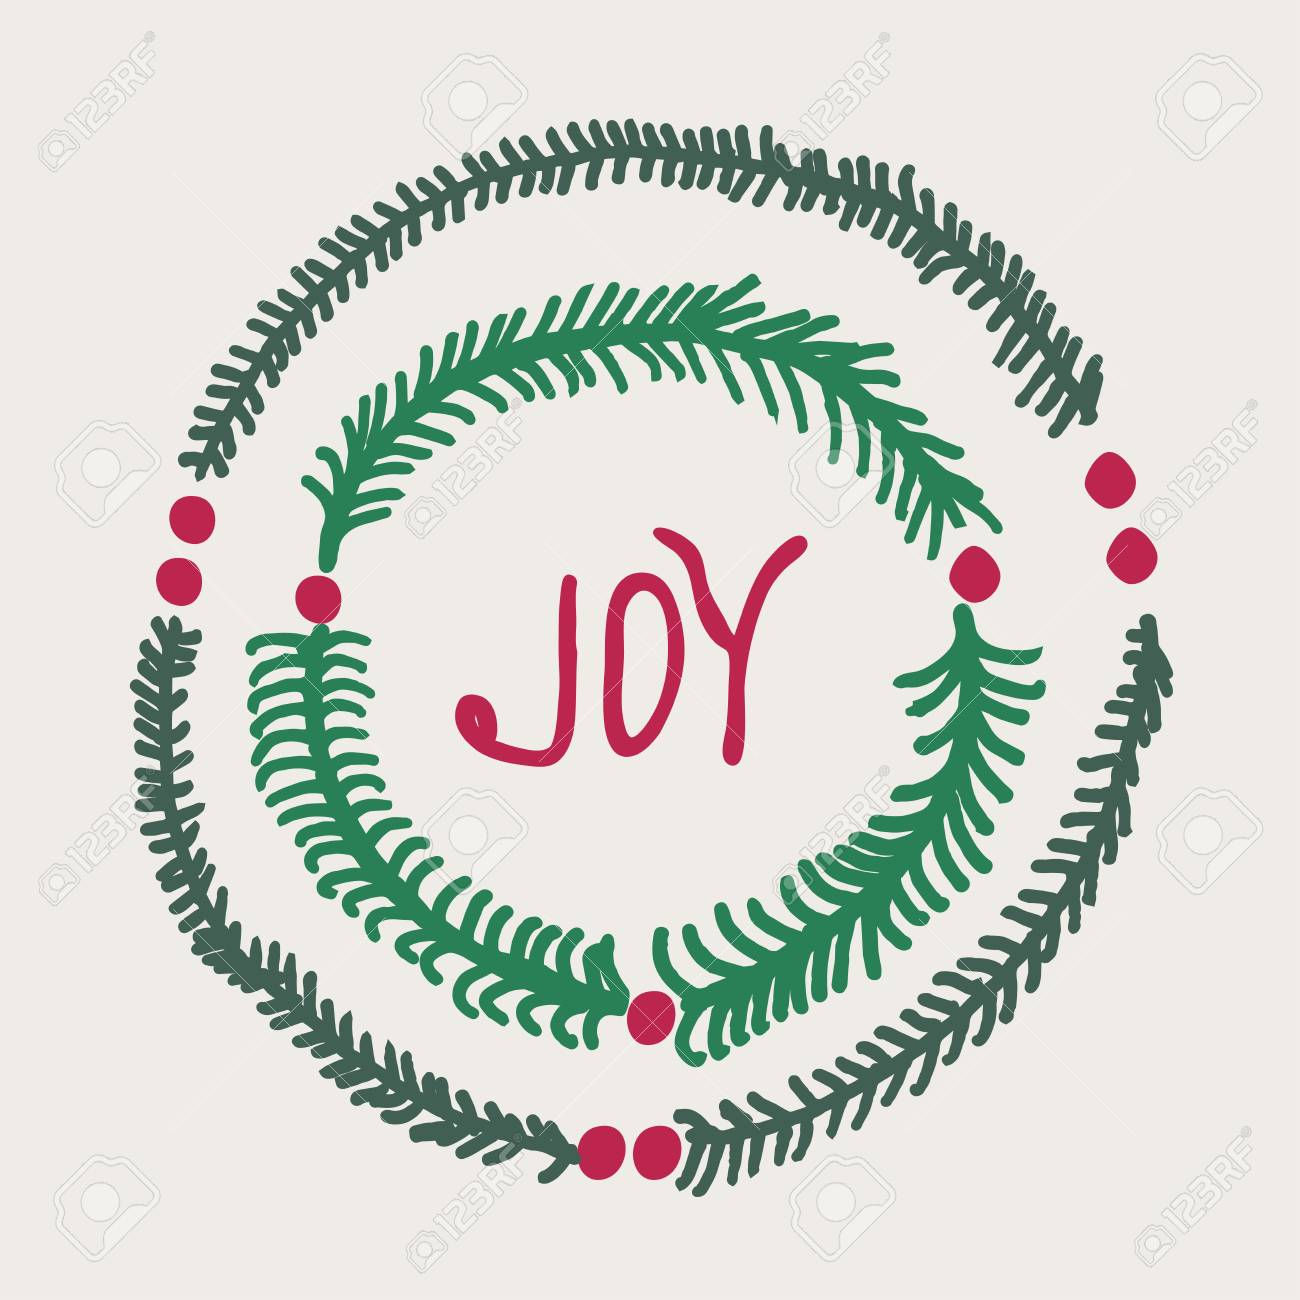 Greeting Card - Joy. Christmas Wreath Hand Drawn Fir Tree Branches ...